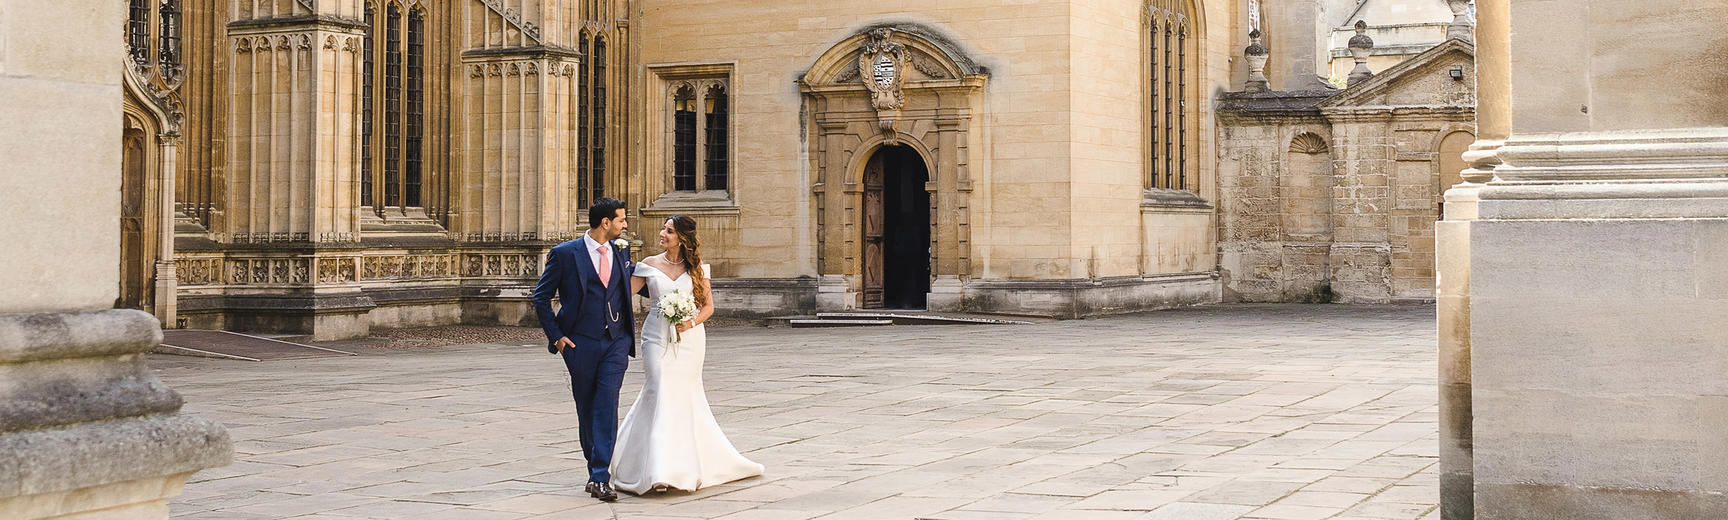 A bride and groom smiling outside the Divinity School